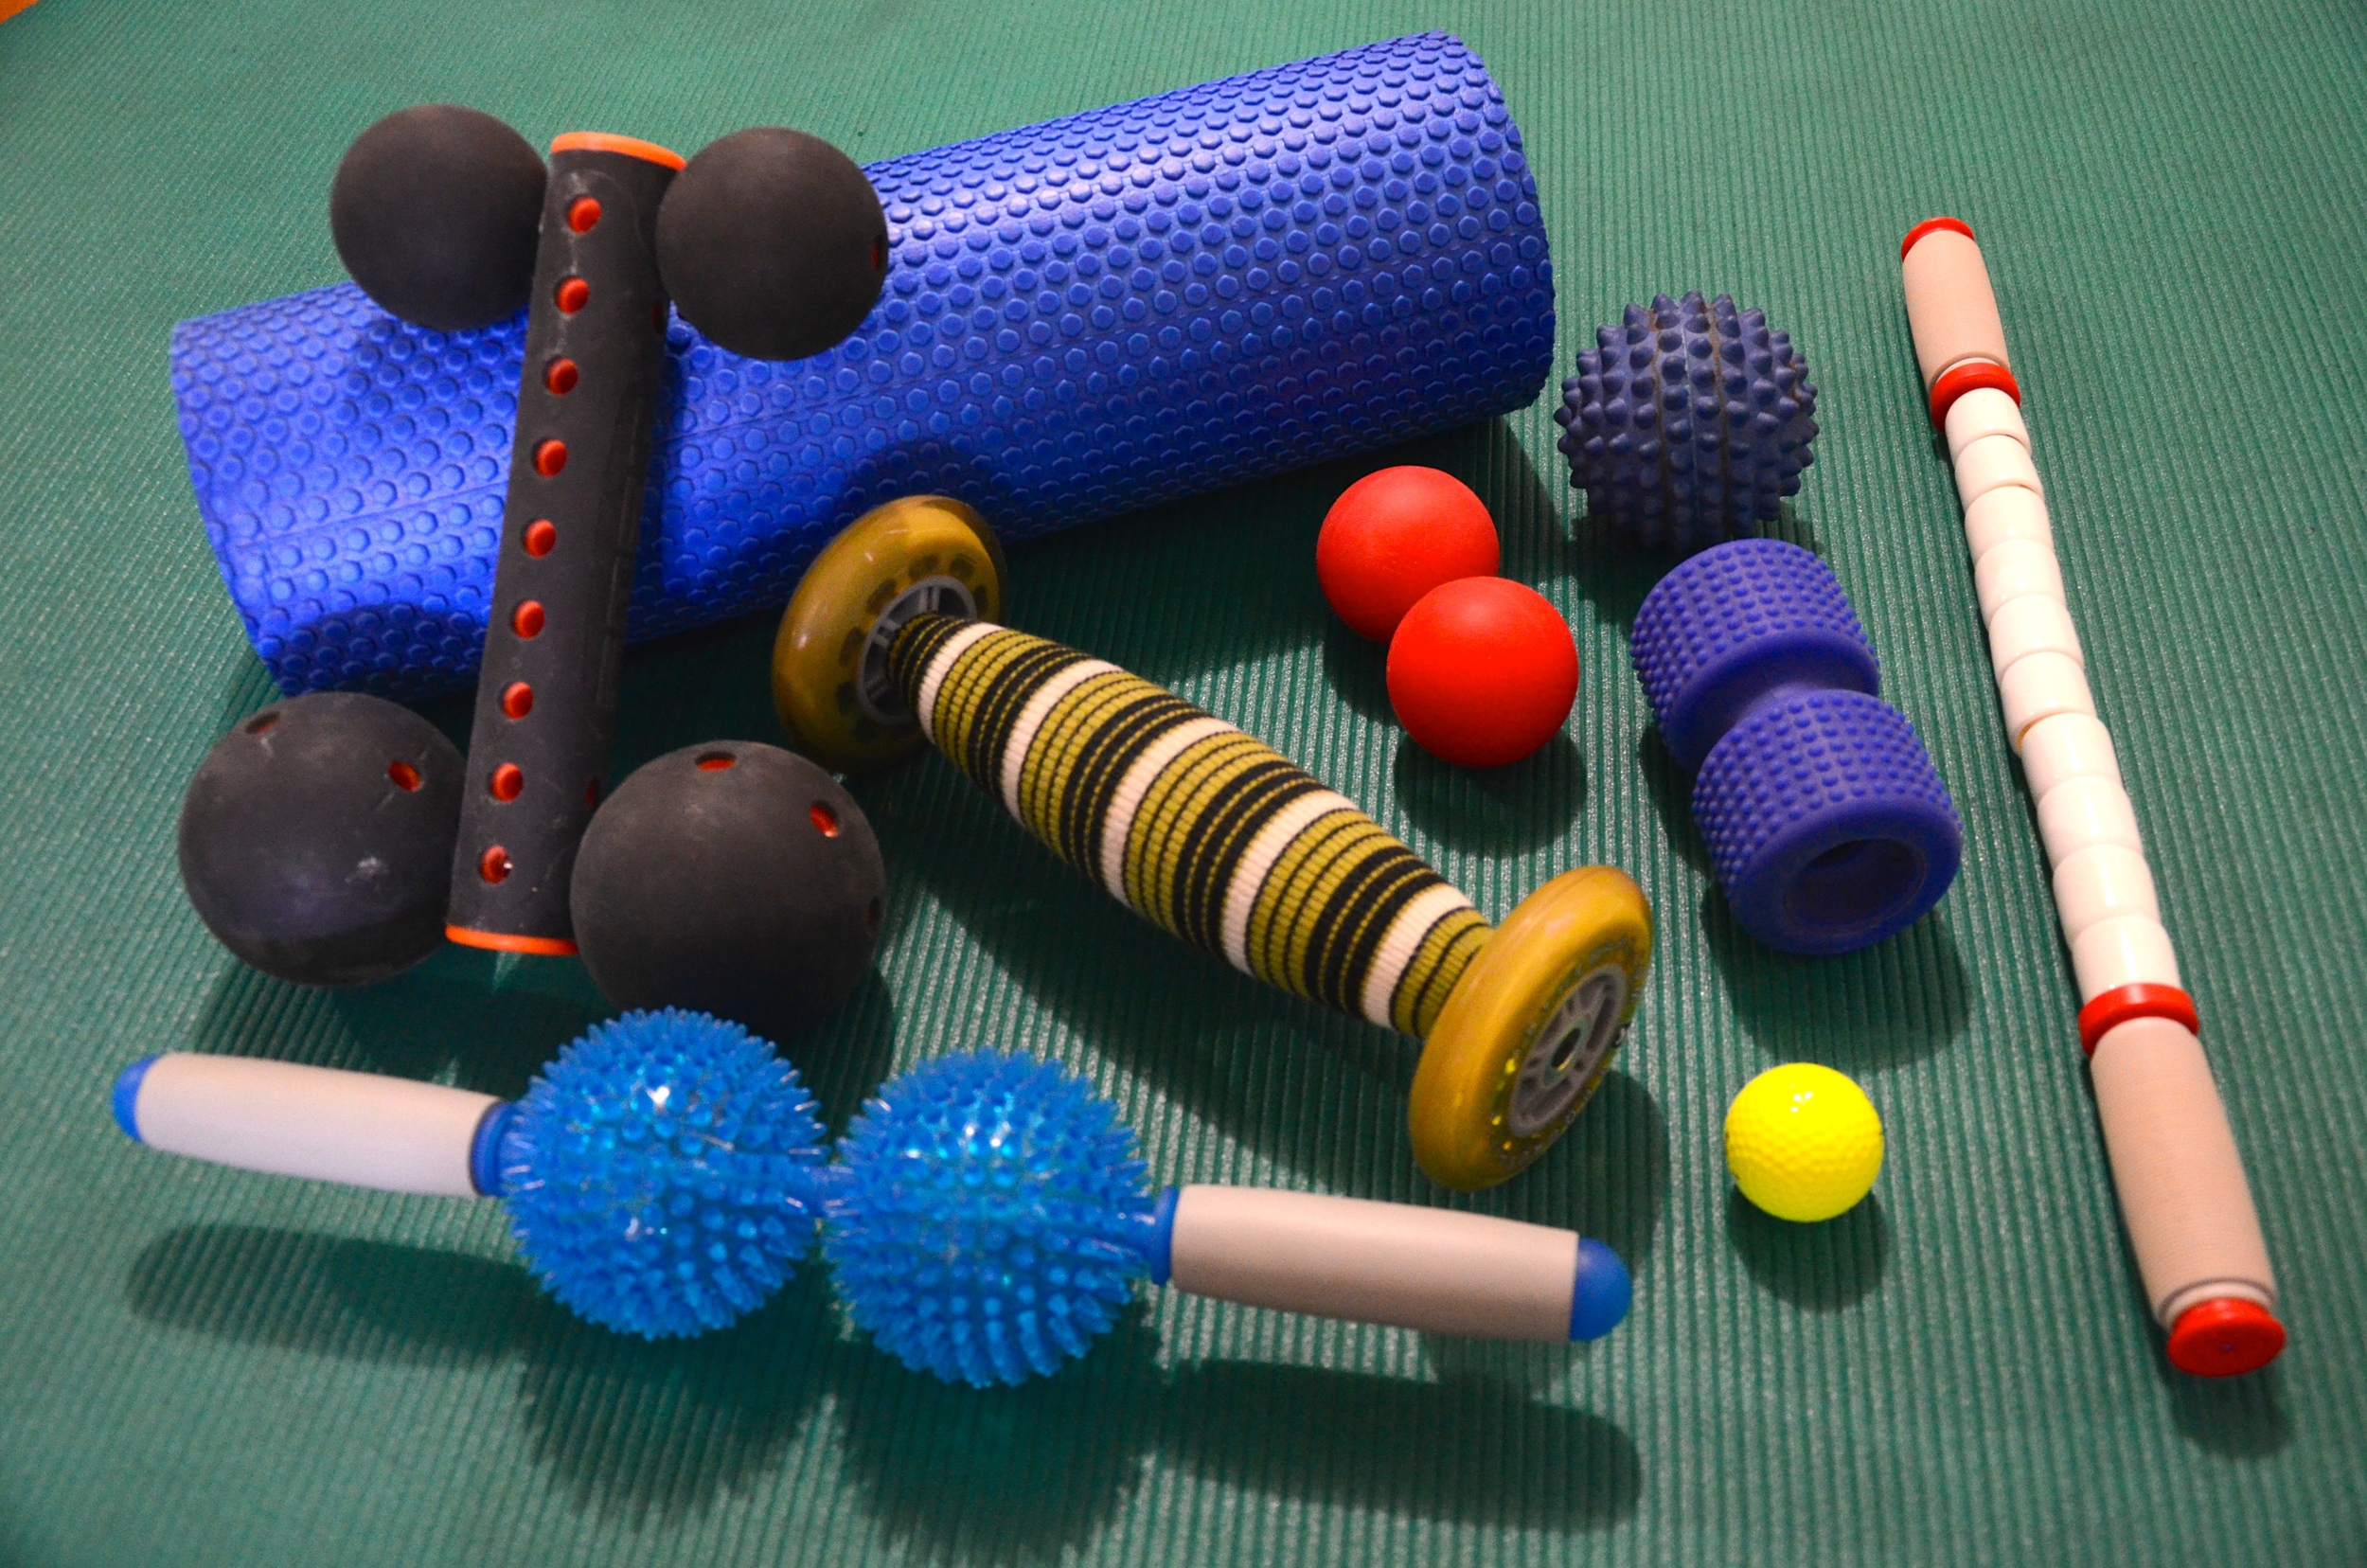 above, some tools for fascia release andoptimal neuromuscular activation. to be used depending onbody-area and compressive tolerance.